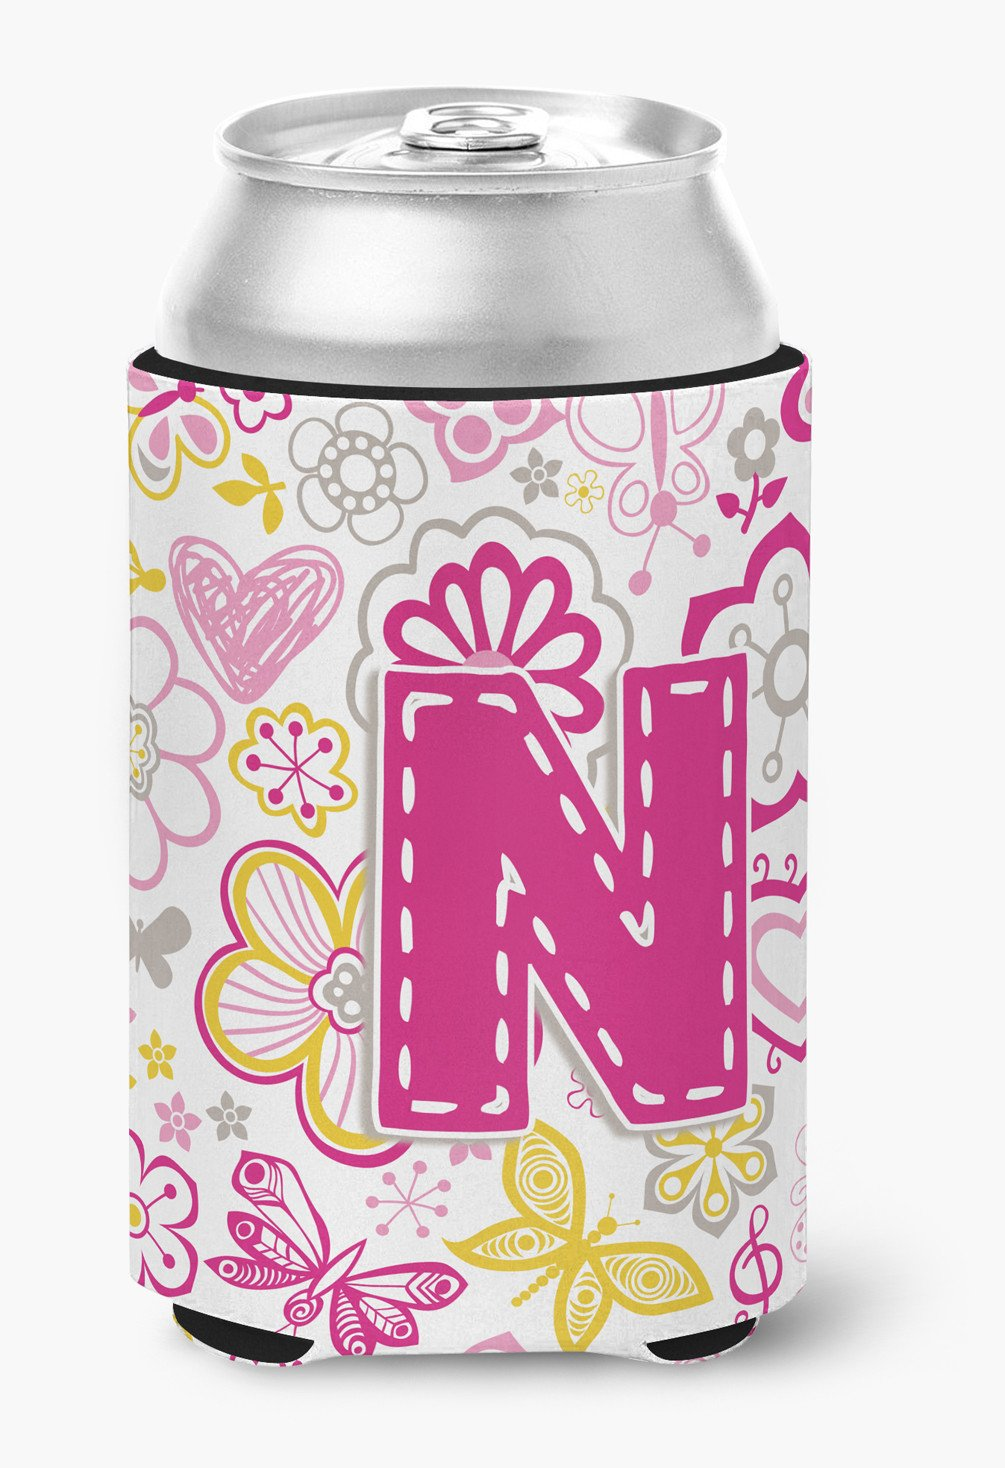 Letter N Flowers and Butterflies Pink Can or Bottle Hugger CJ2005-NCC by Caroline's Treasures